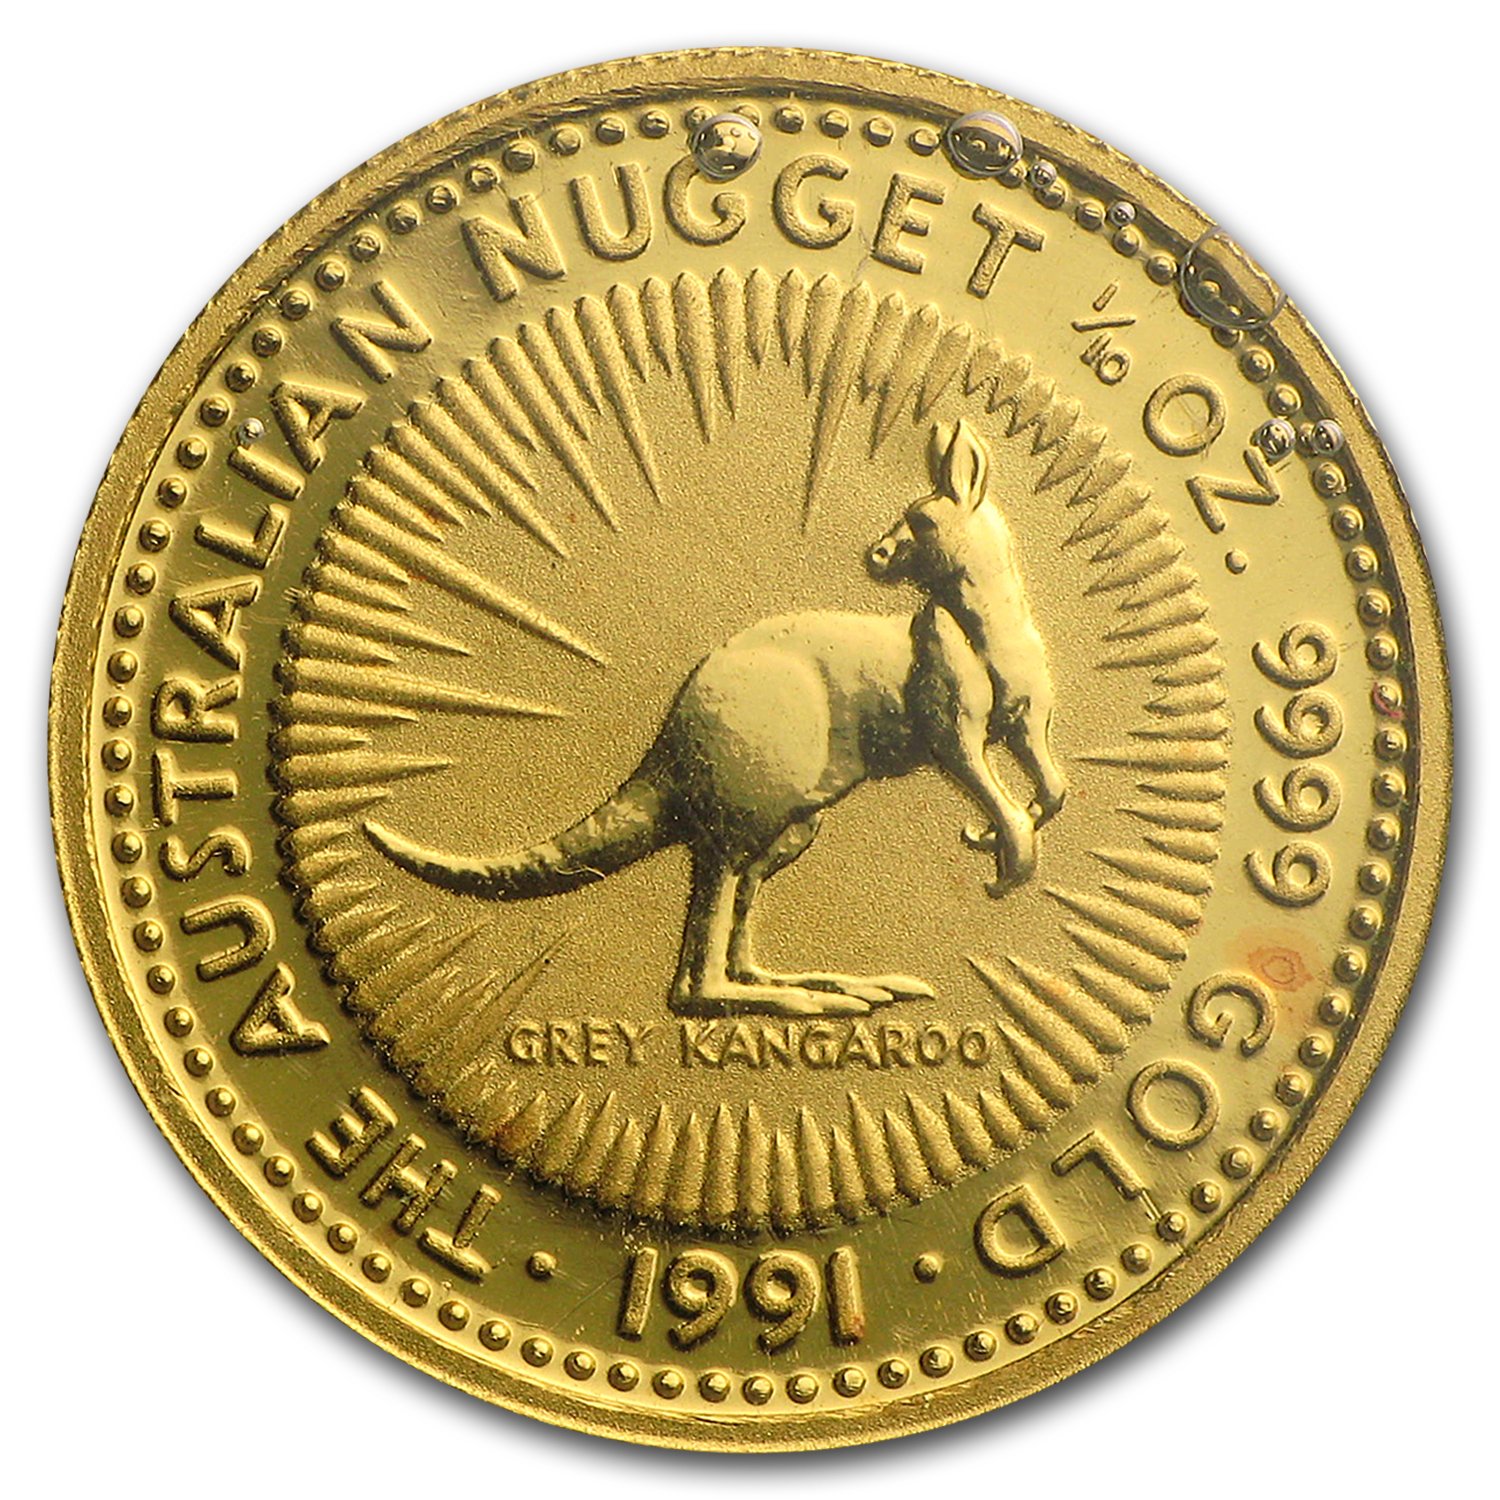 1991 Australia 1/10 oz Gold Nugget